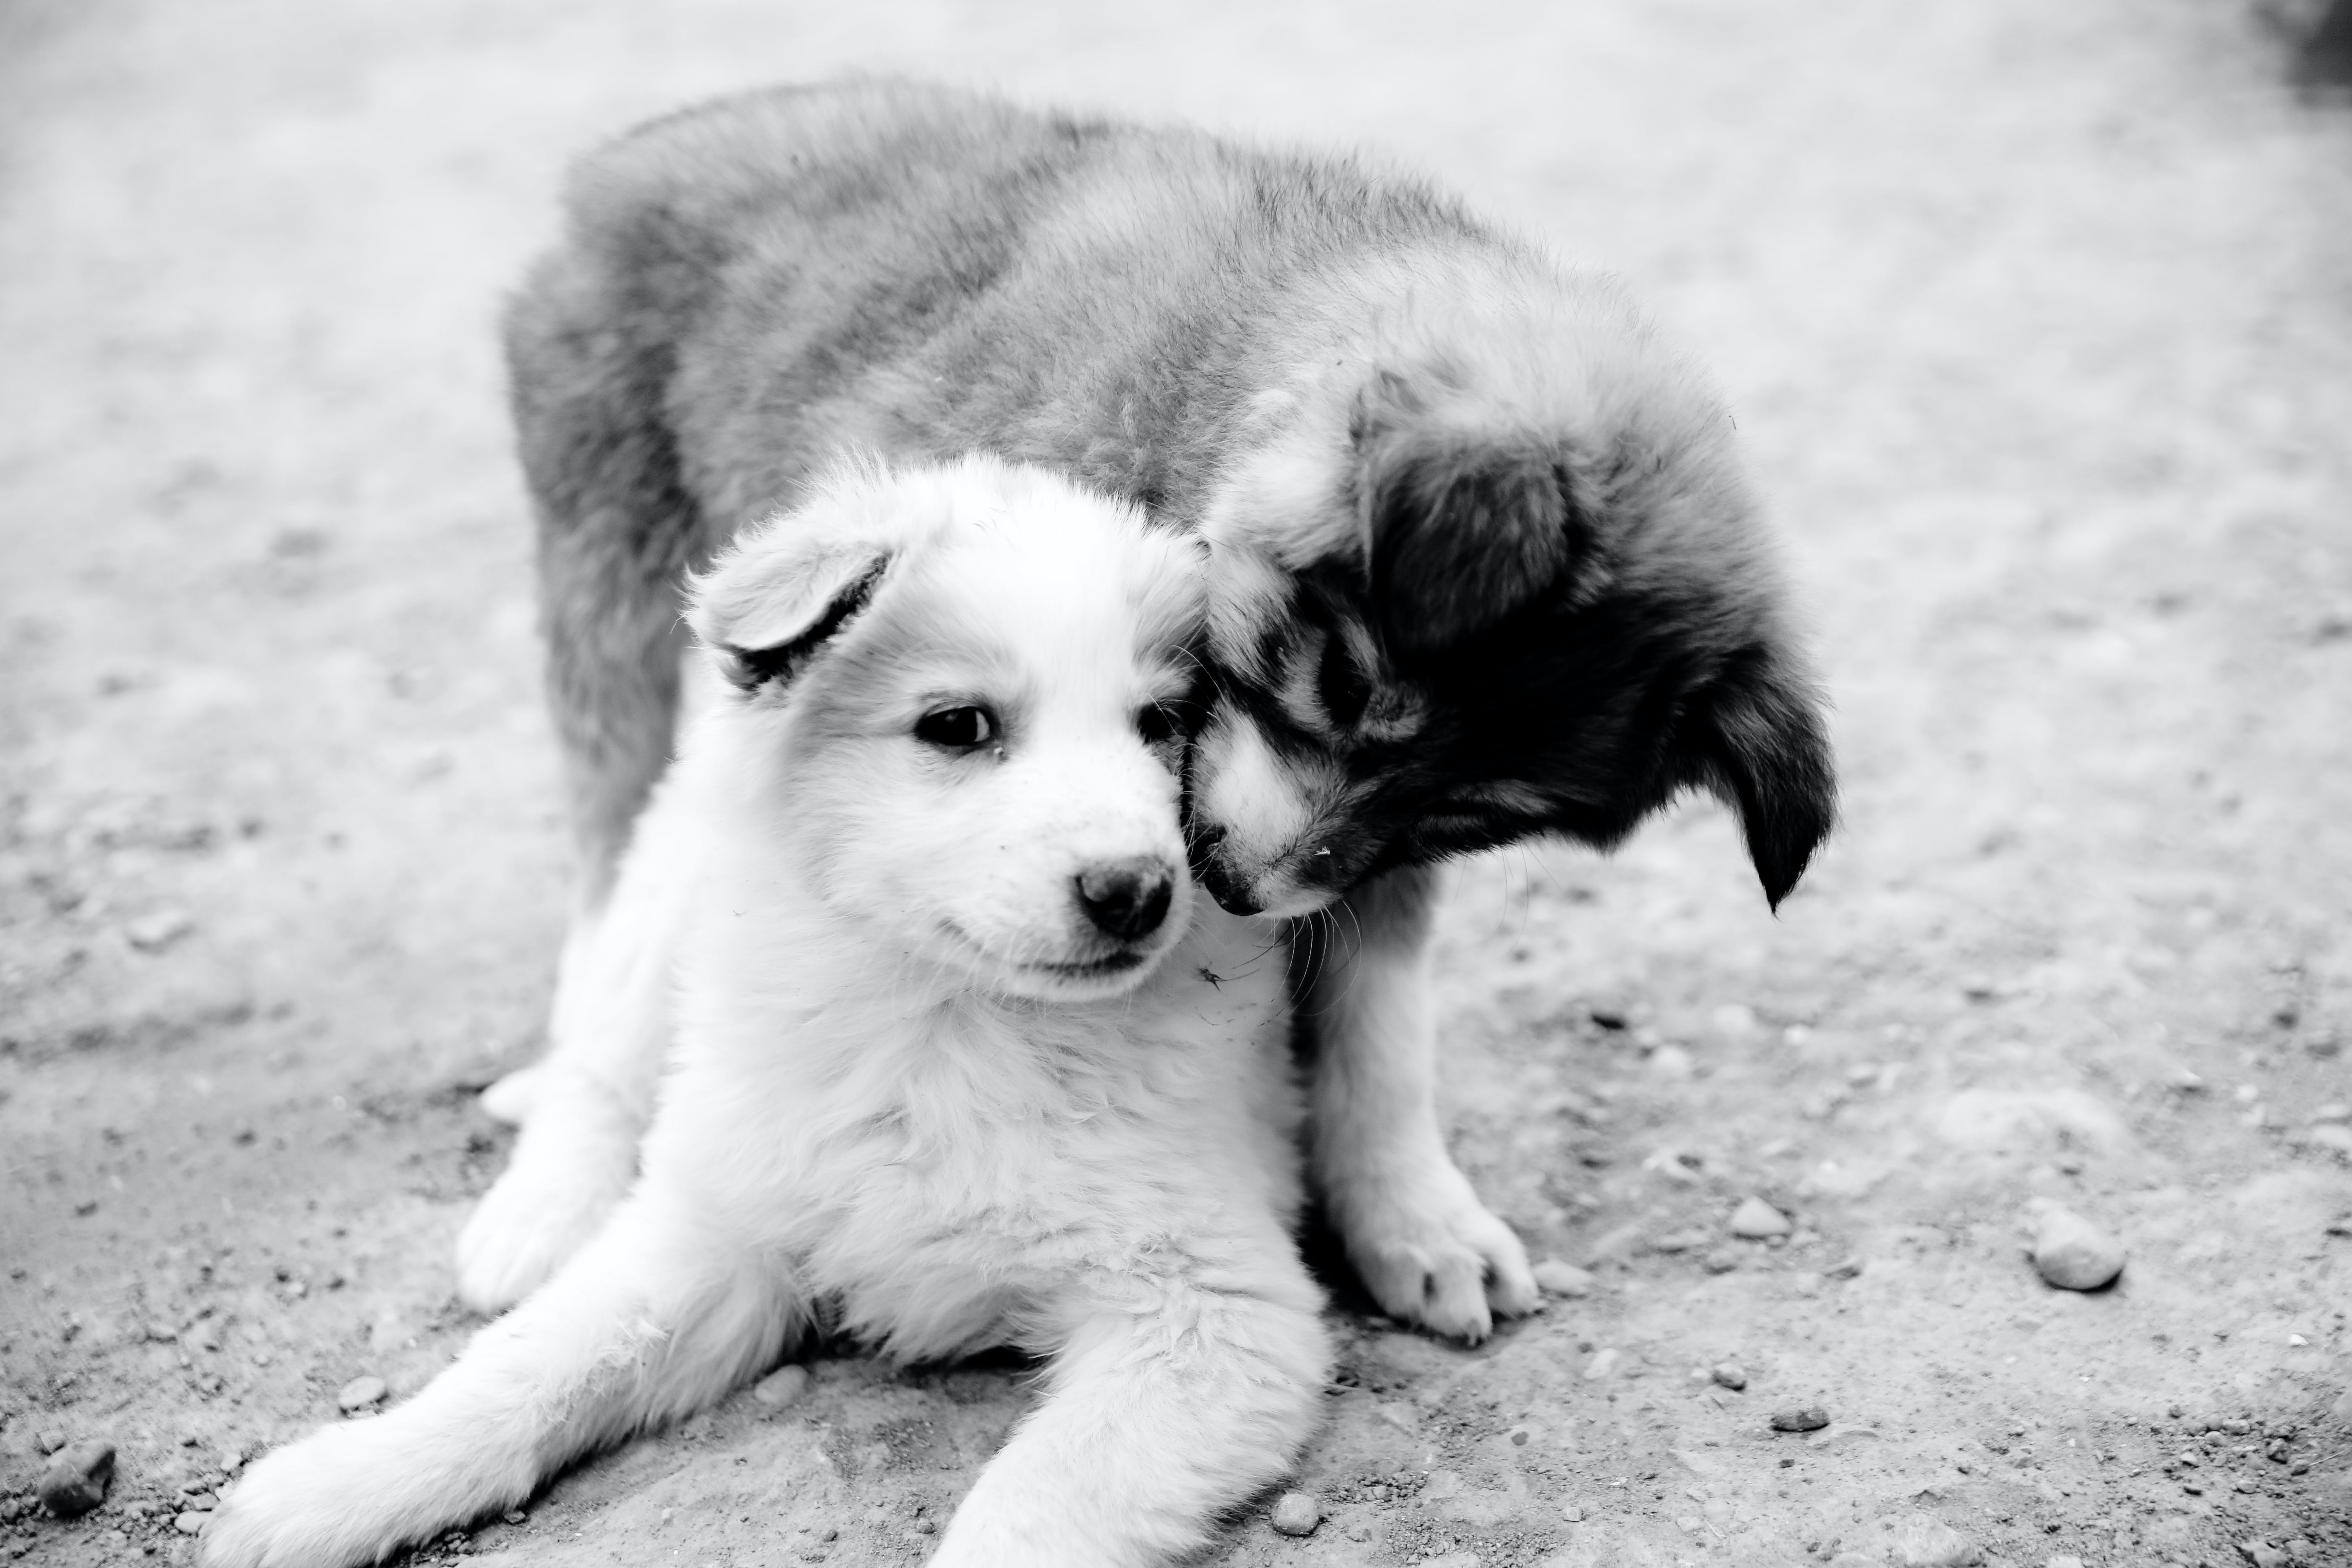 Grayscale Photography of Two Puppies